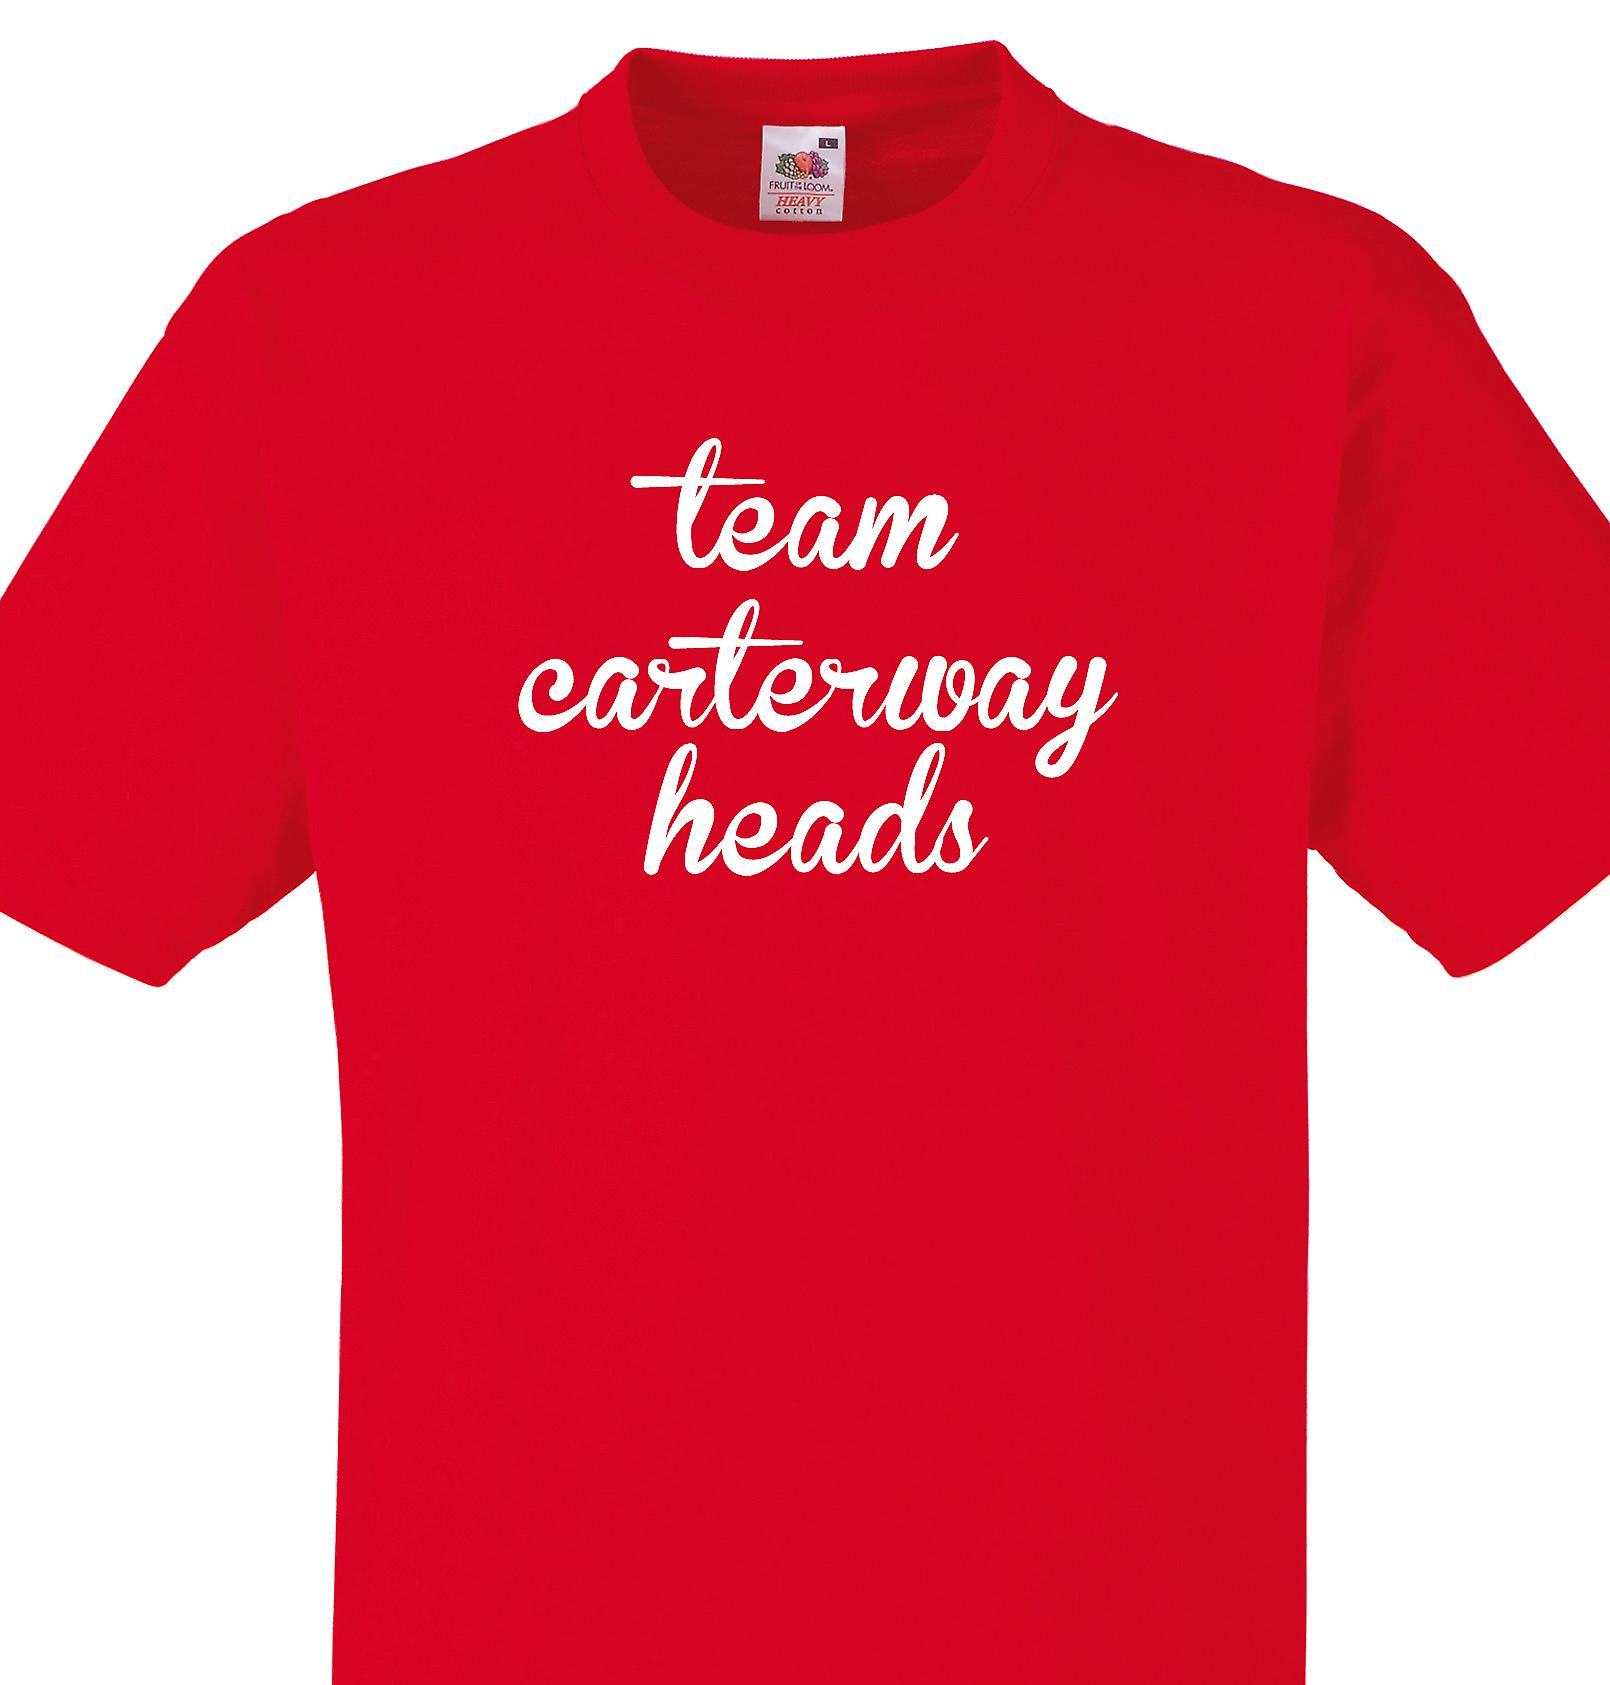 Team Carterway heads Red T shirt